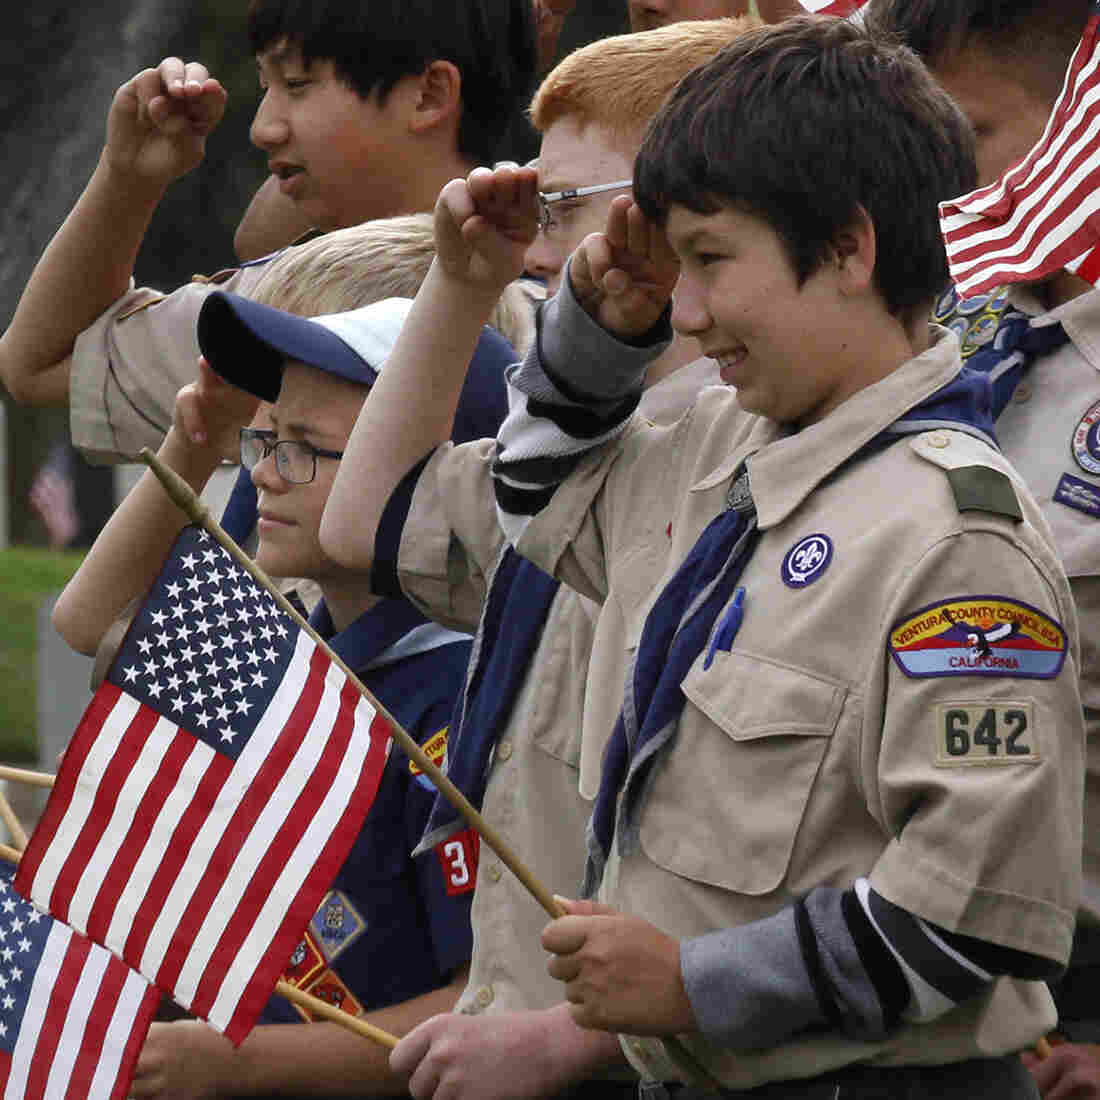 Boy Scouts attend a Memorial Day event in Los Angeles in May. A bill under consideration by the California Legislature would take away the tax-exempt status of the Boy Scouts of America.